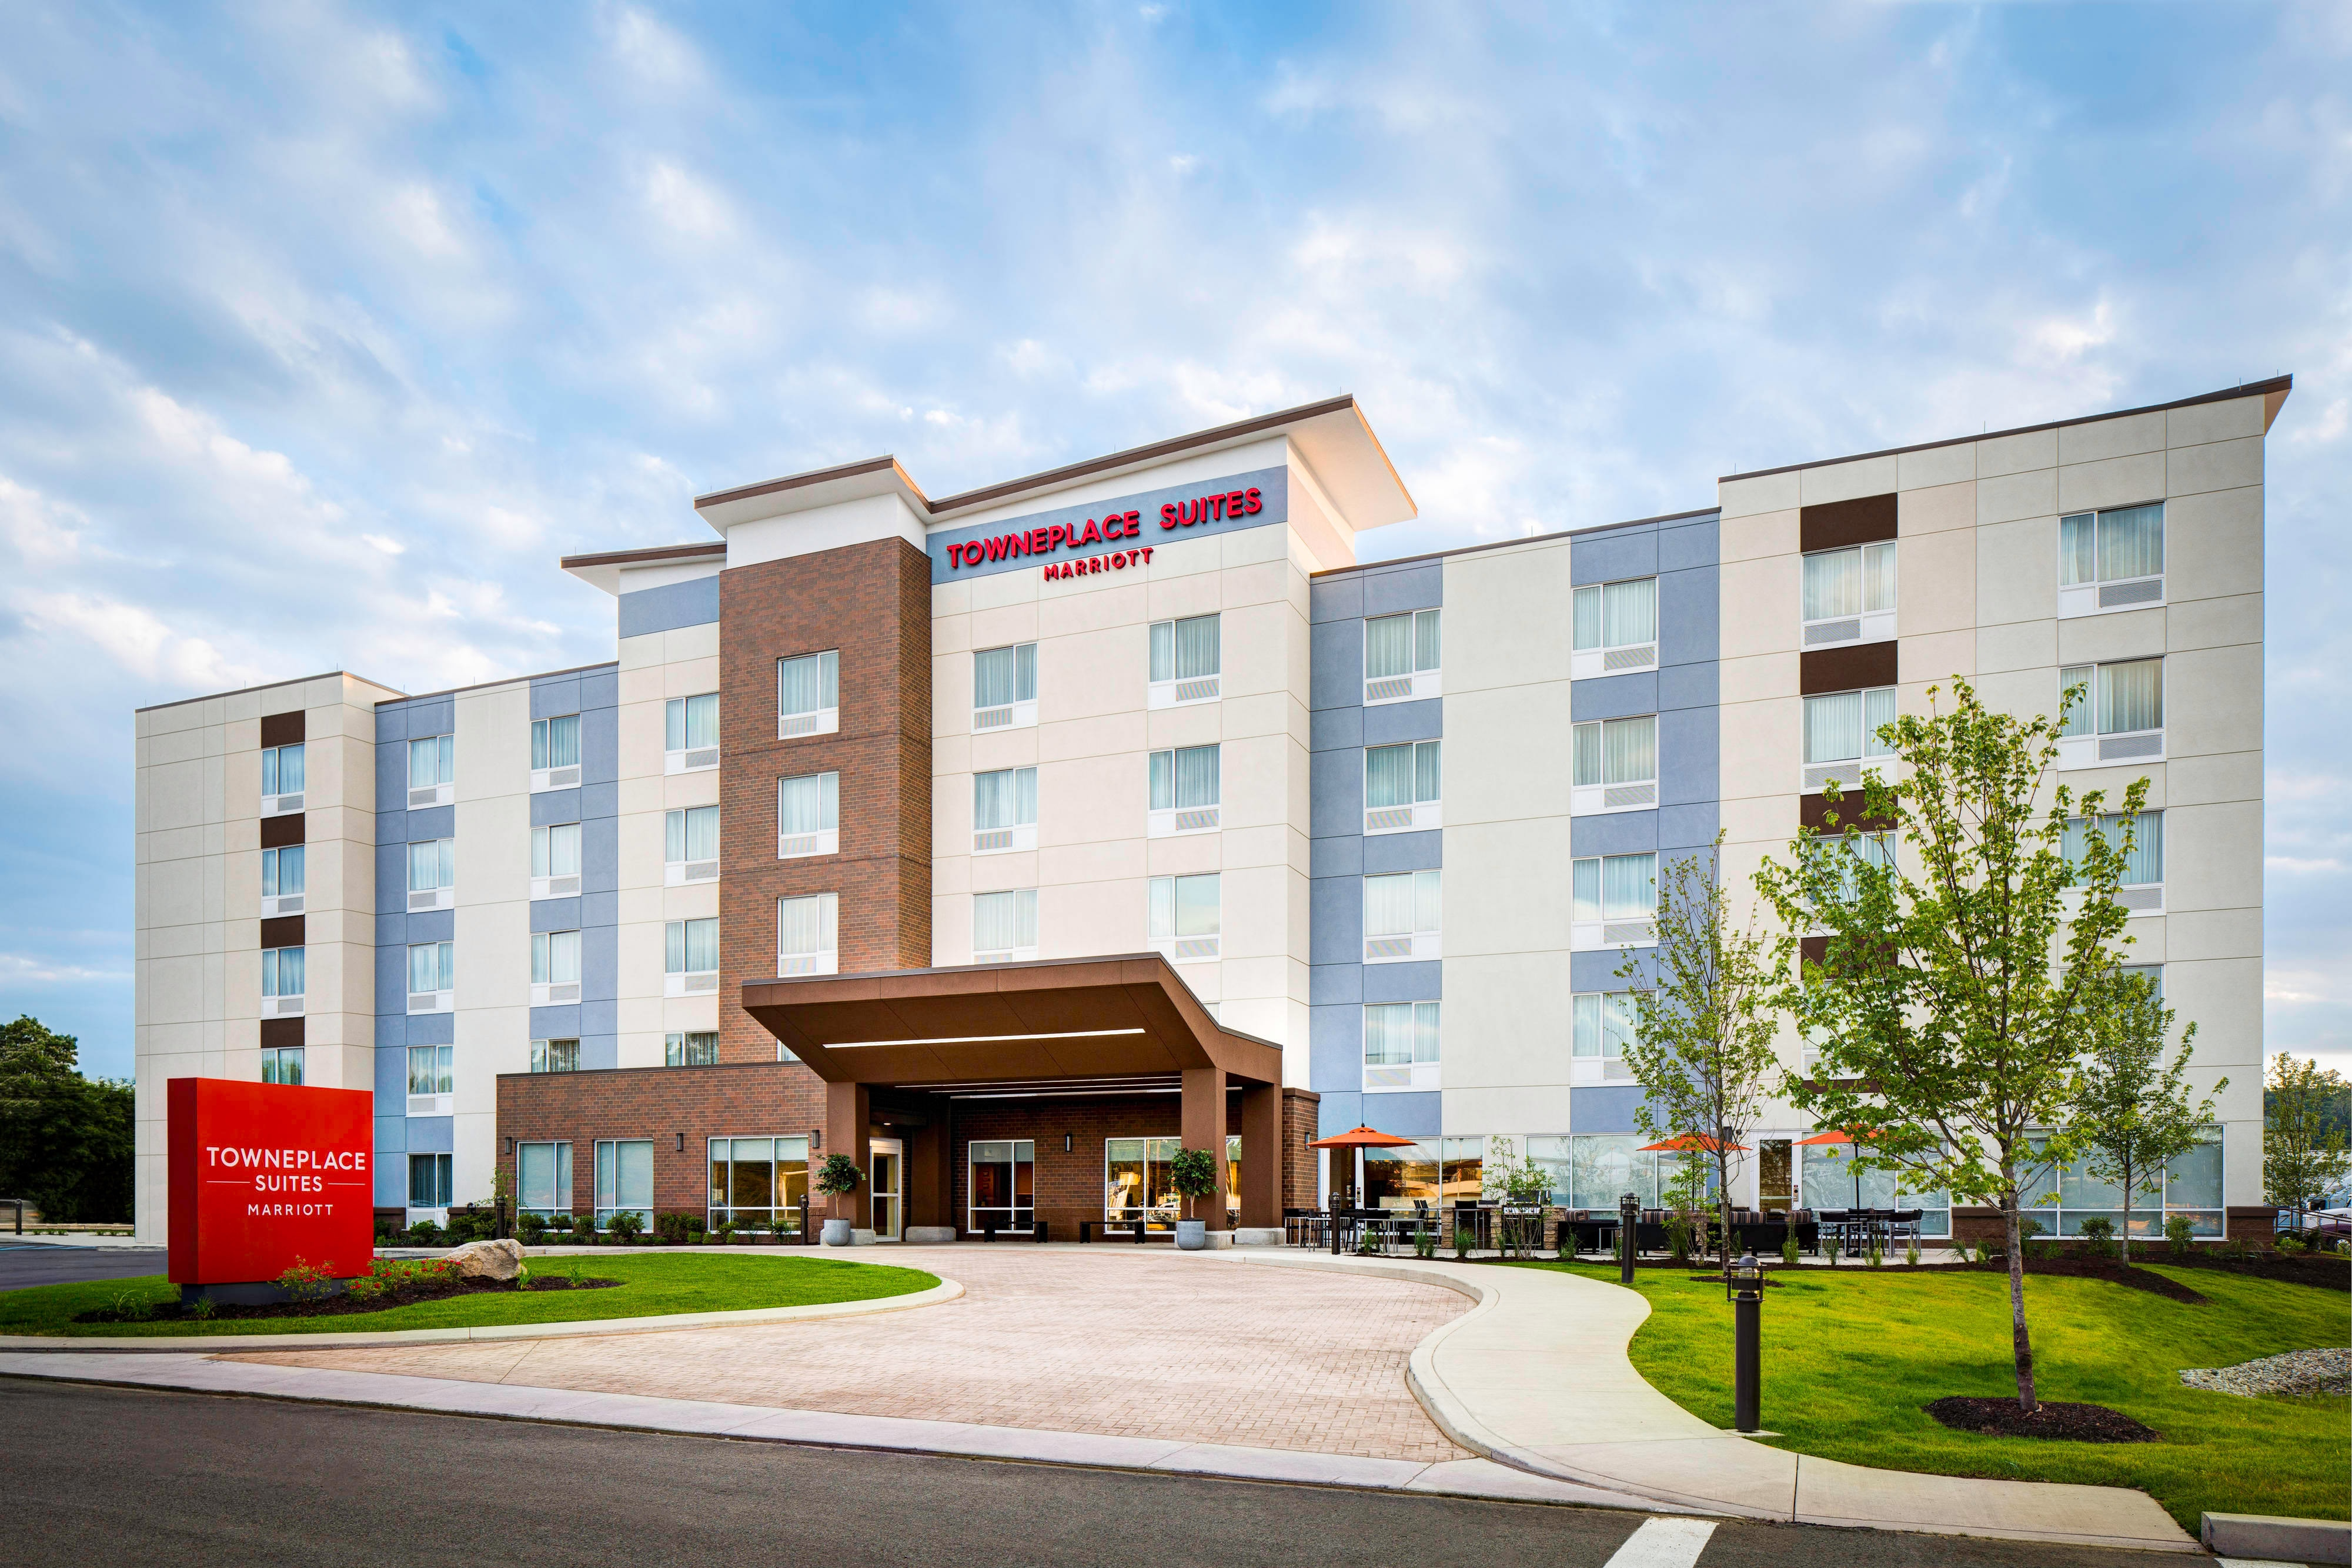 TownePlace Suites Hotel